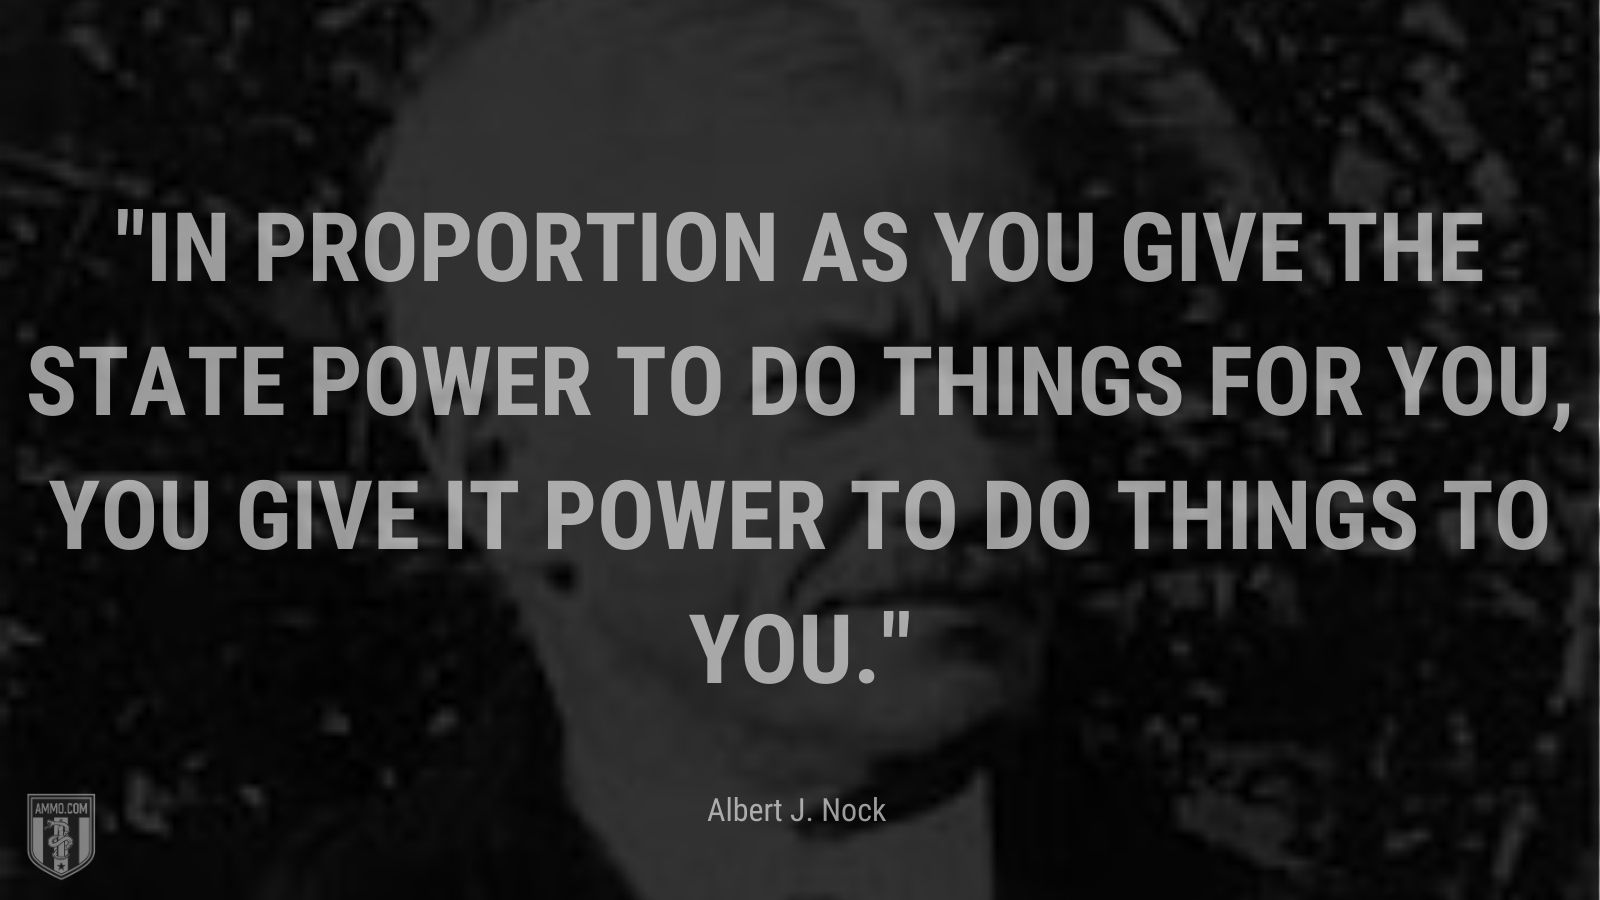 """""""In proportion as you give the state power to do things for you, you give it power to do things to you."""" - Albert J. Nock"""